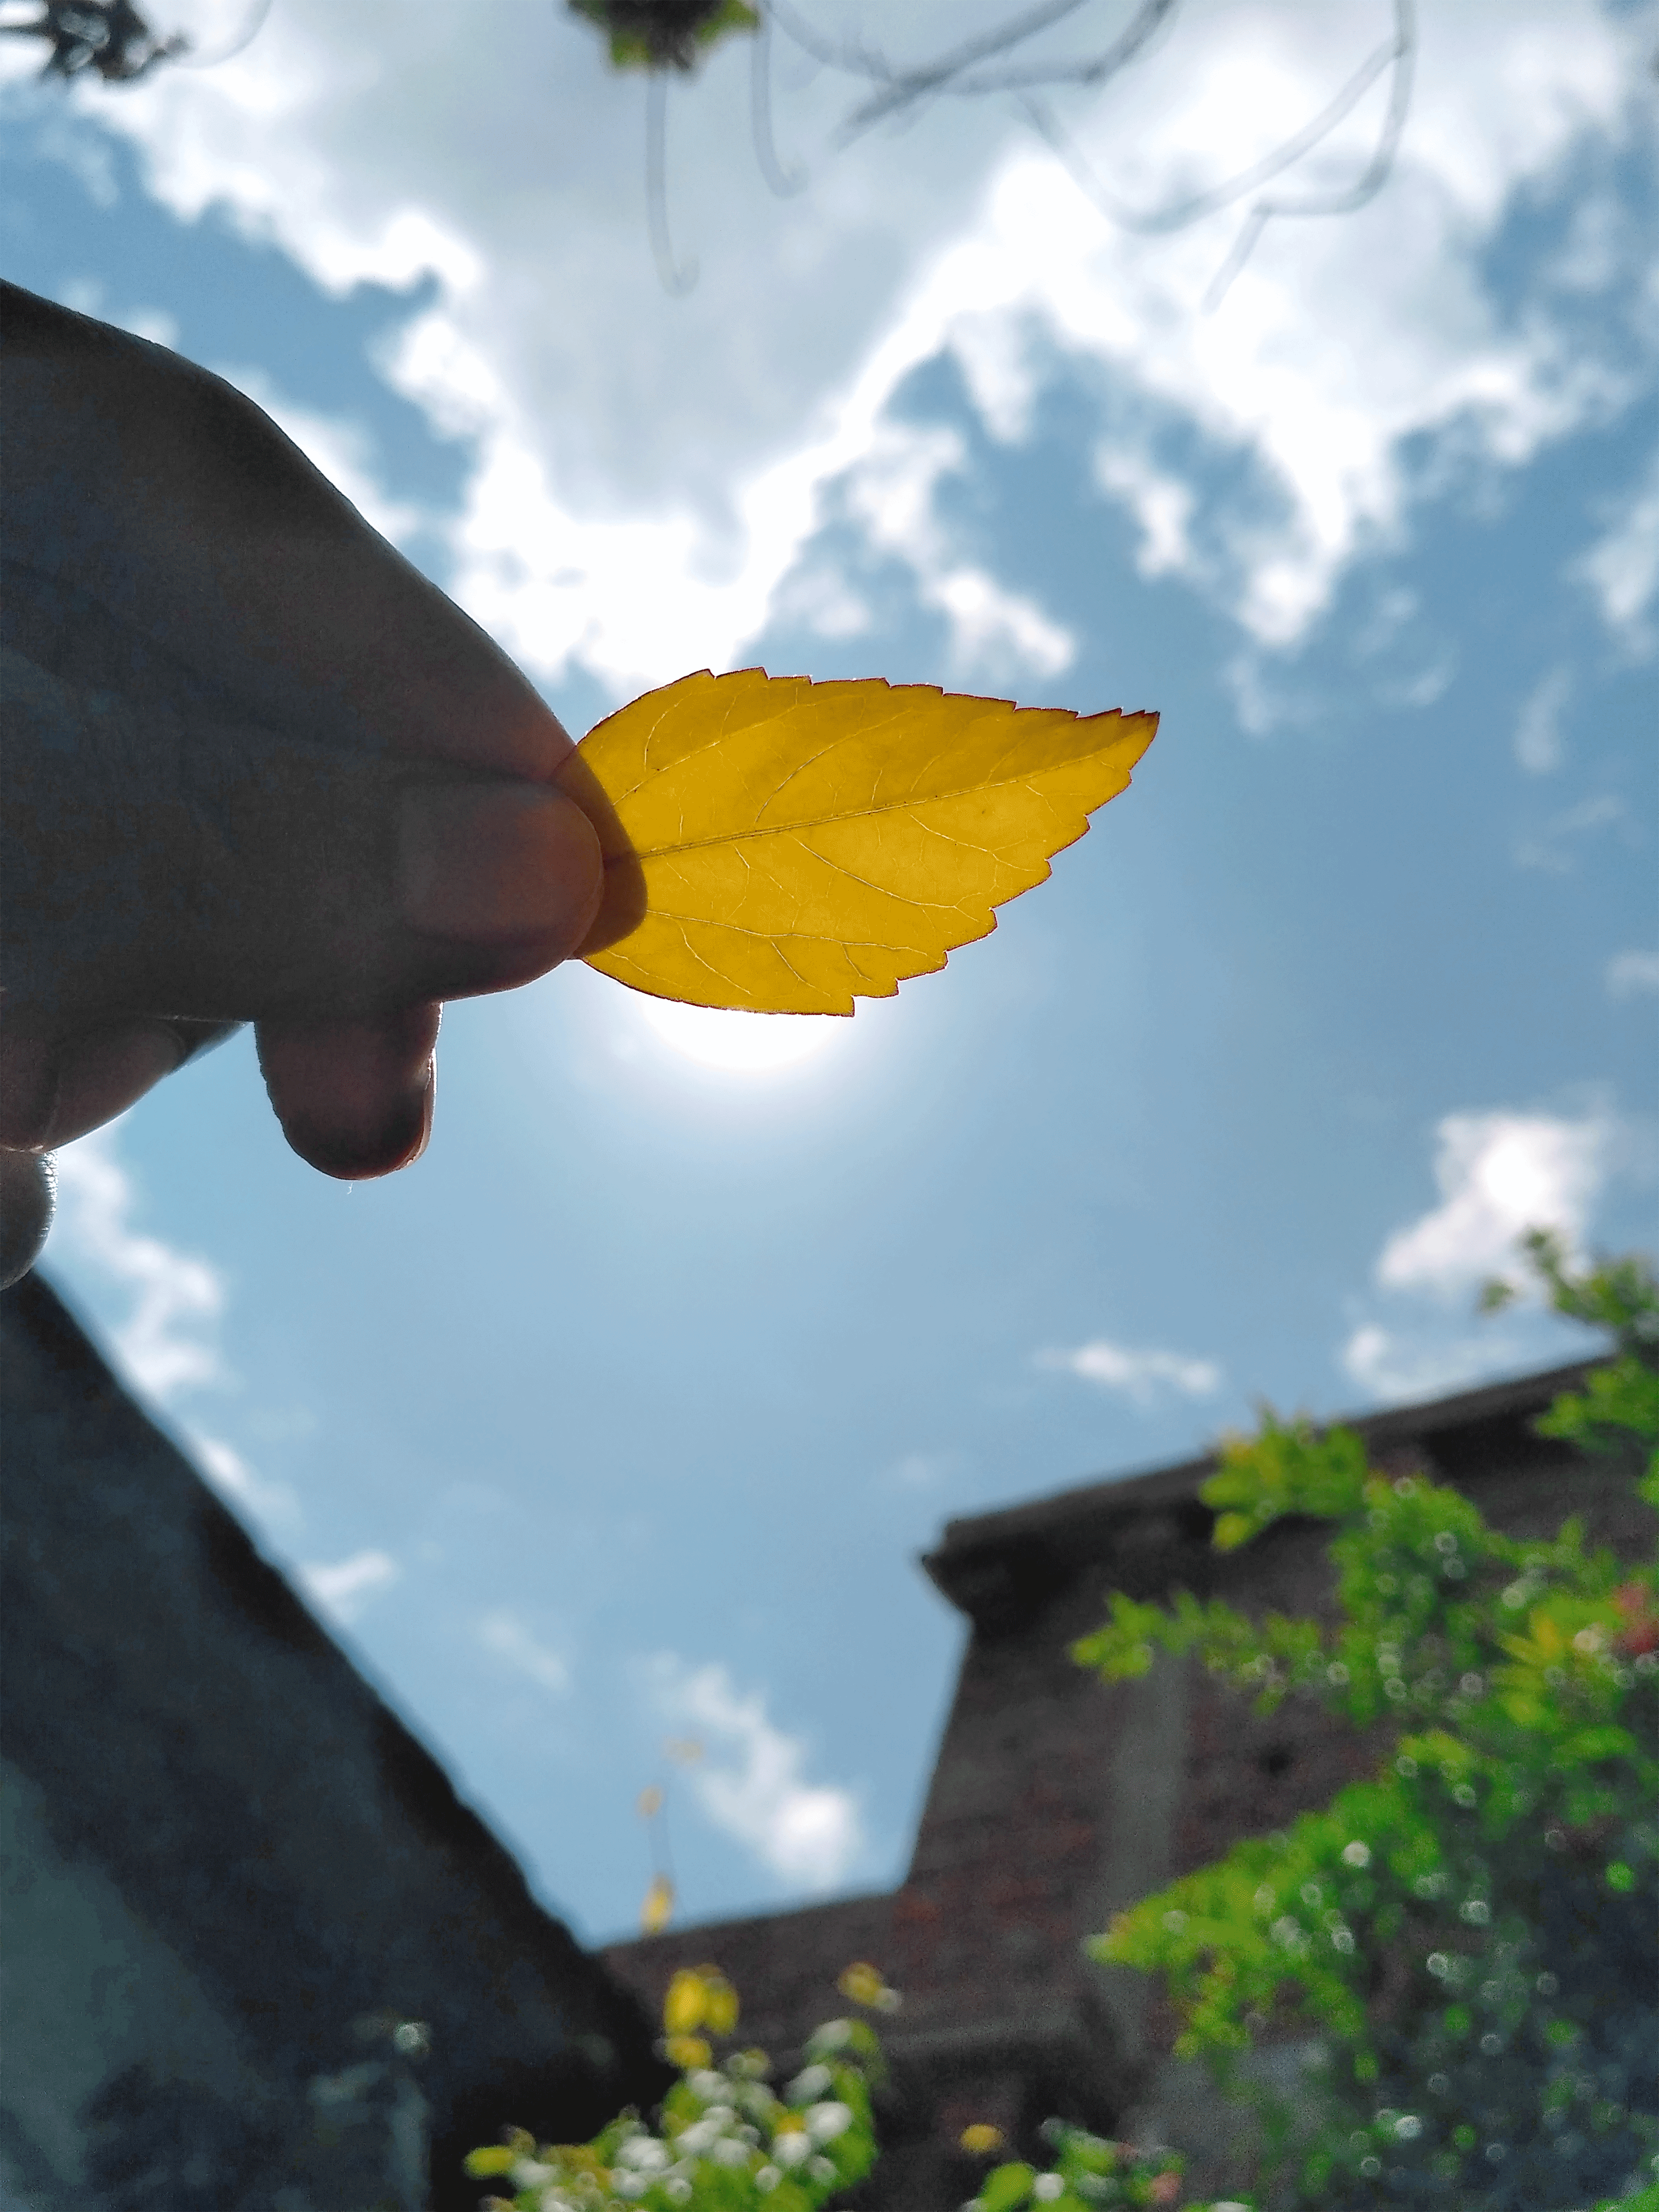 A leaf in hand